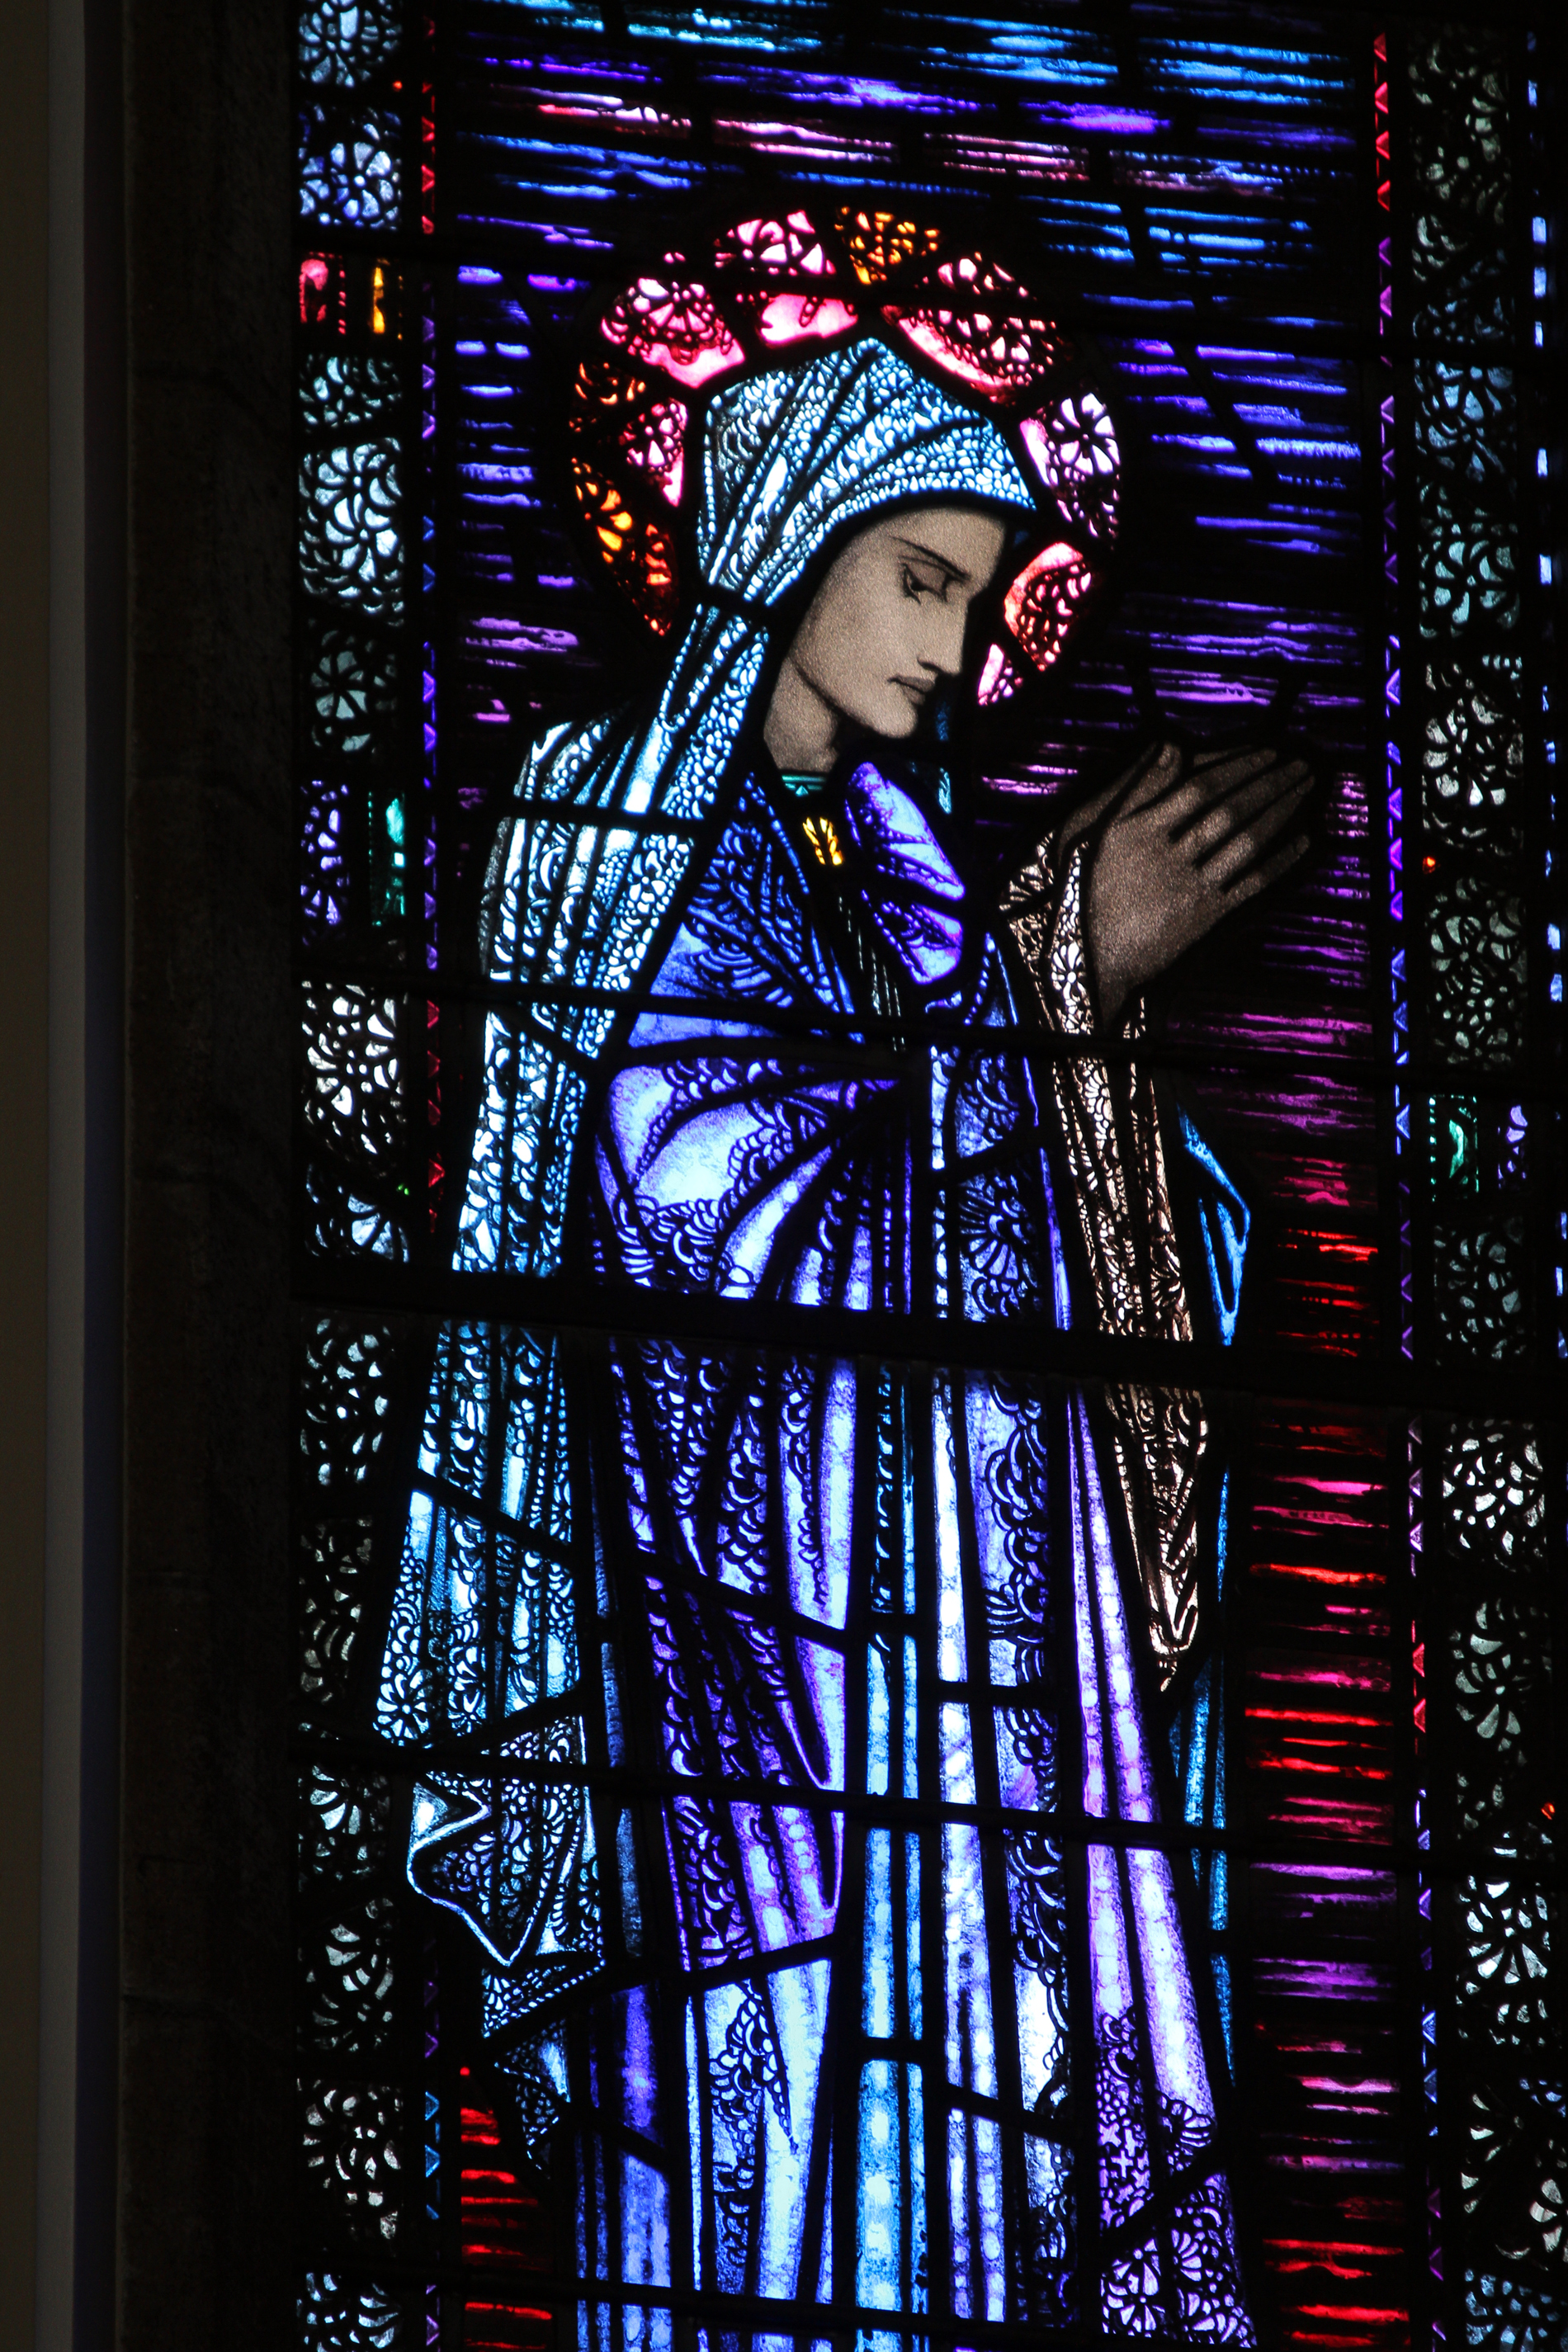 Our-Lady-stained-glass-window